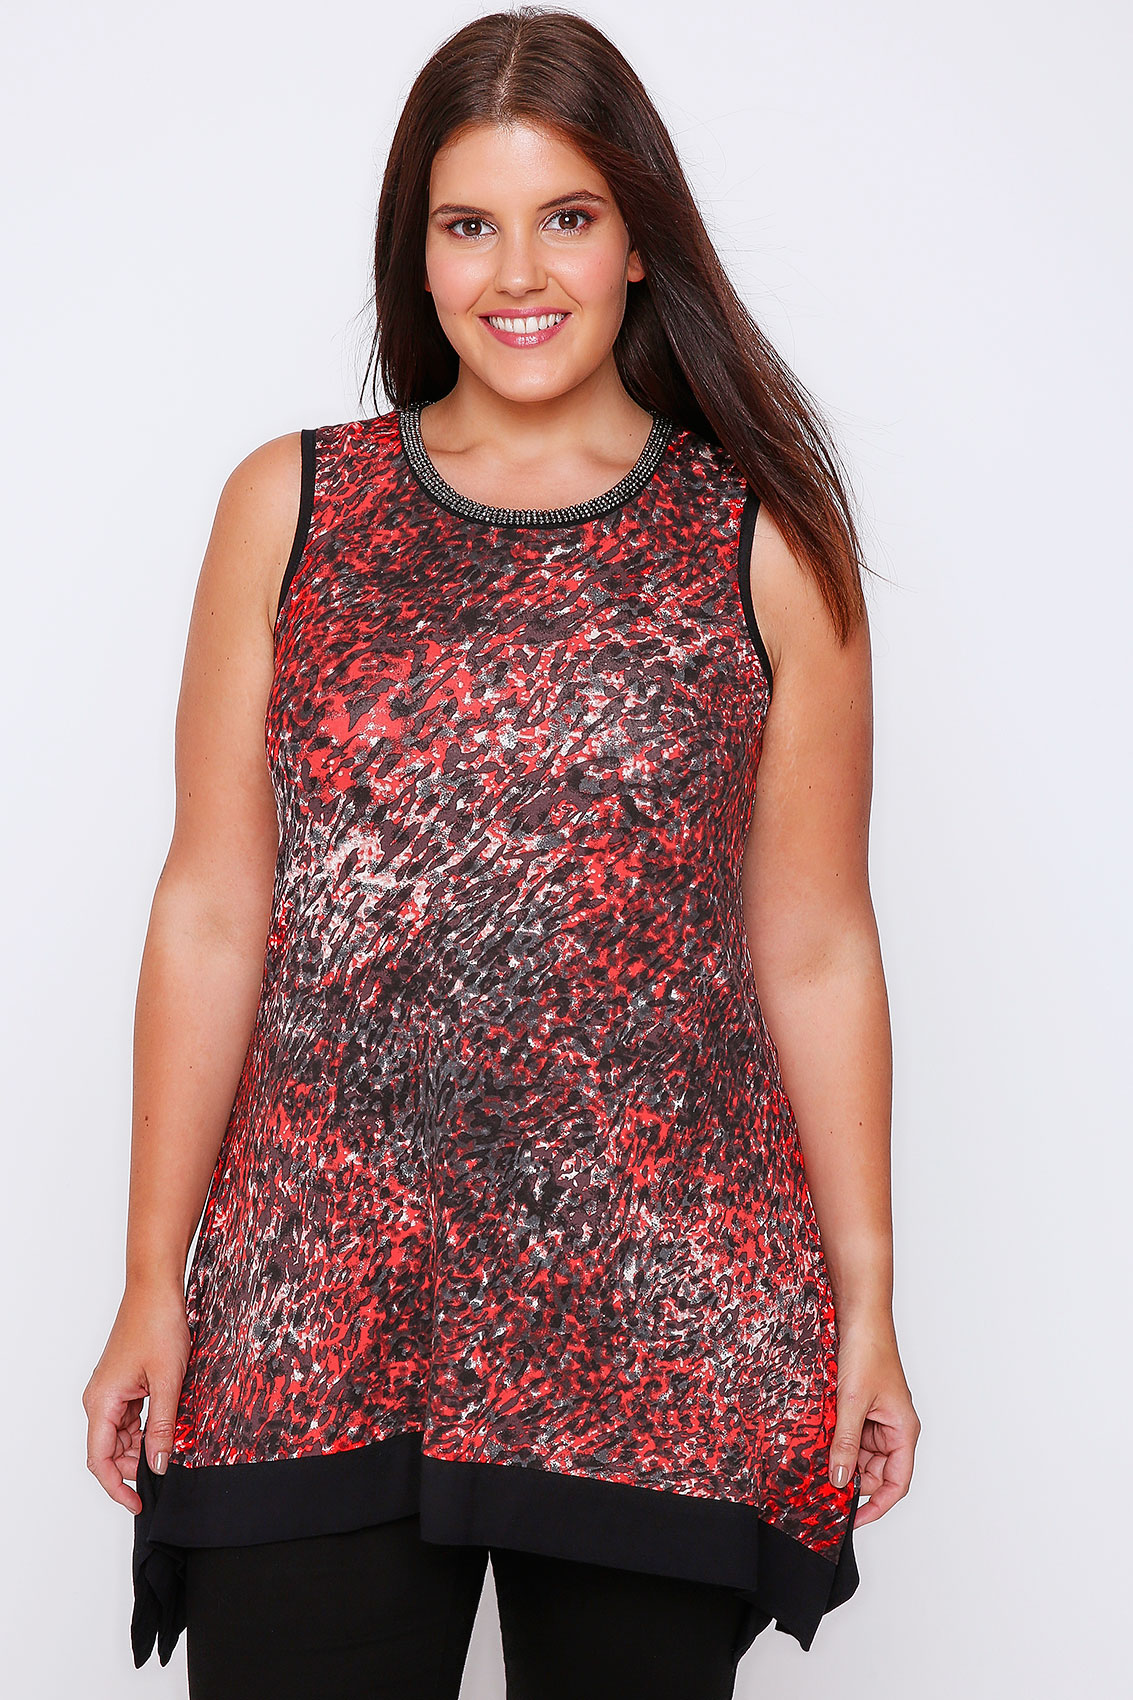 red animal print hanky hem sleeveless top with beaded neckline plus size 16 18 20 22 24 26 28 30 32. Black Bedroom Furniture Sets. Home Design Ideas